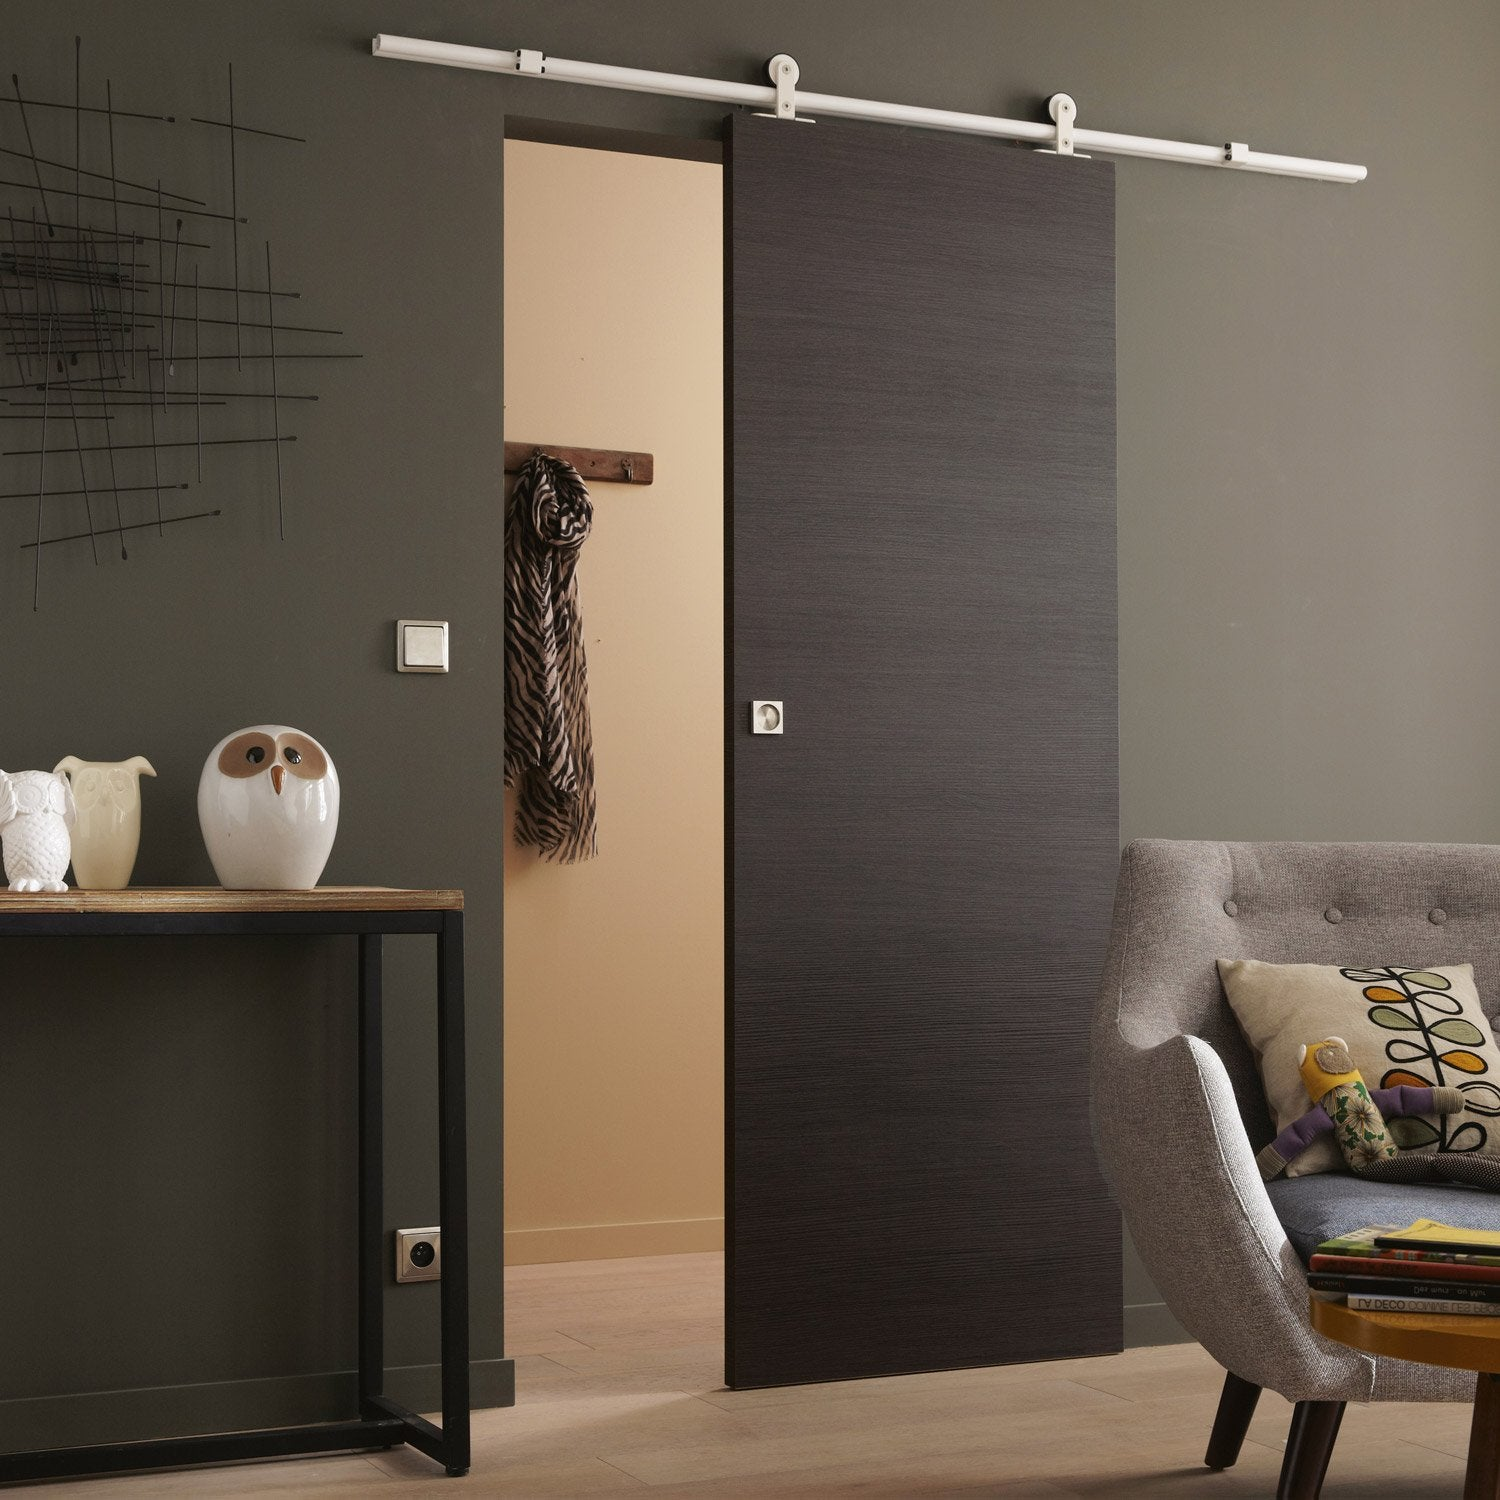 Pose d 39 une porte coulissante leroy merlin for Porte coulissante interieur leroy merlin